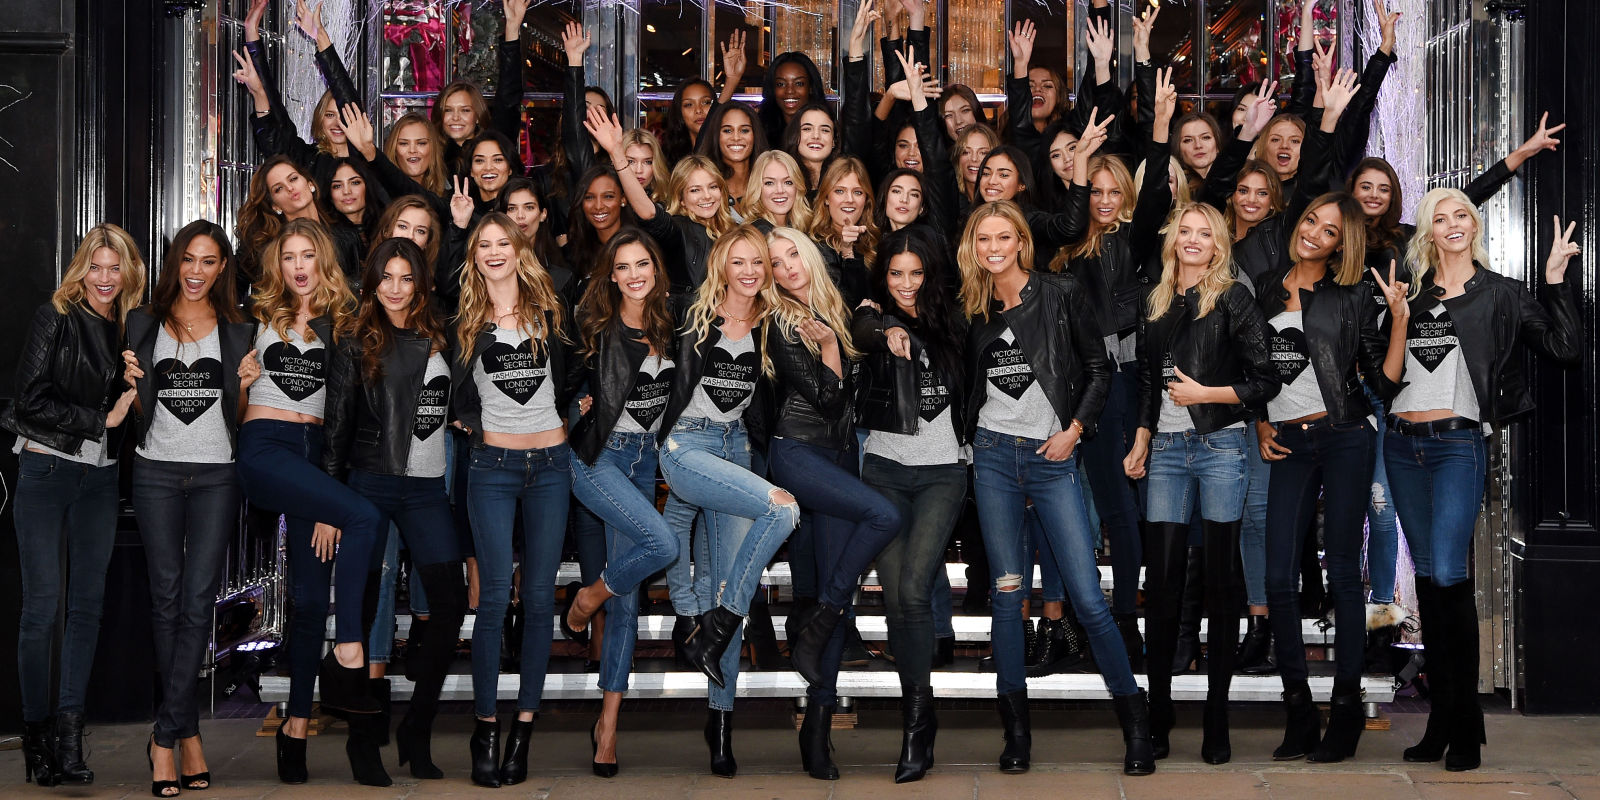 Top Modeling Agencies In Los Angeles For Trade Show Models, Promo Models, Convention Models, And Event Staff (Promotional Models Event Staffing). Above: Victoria's Secret Models.